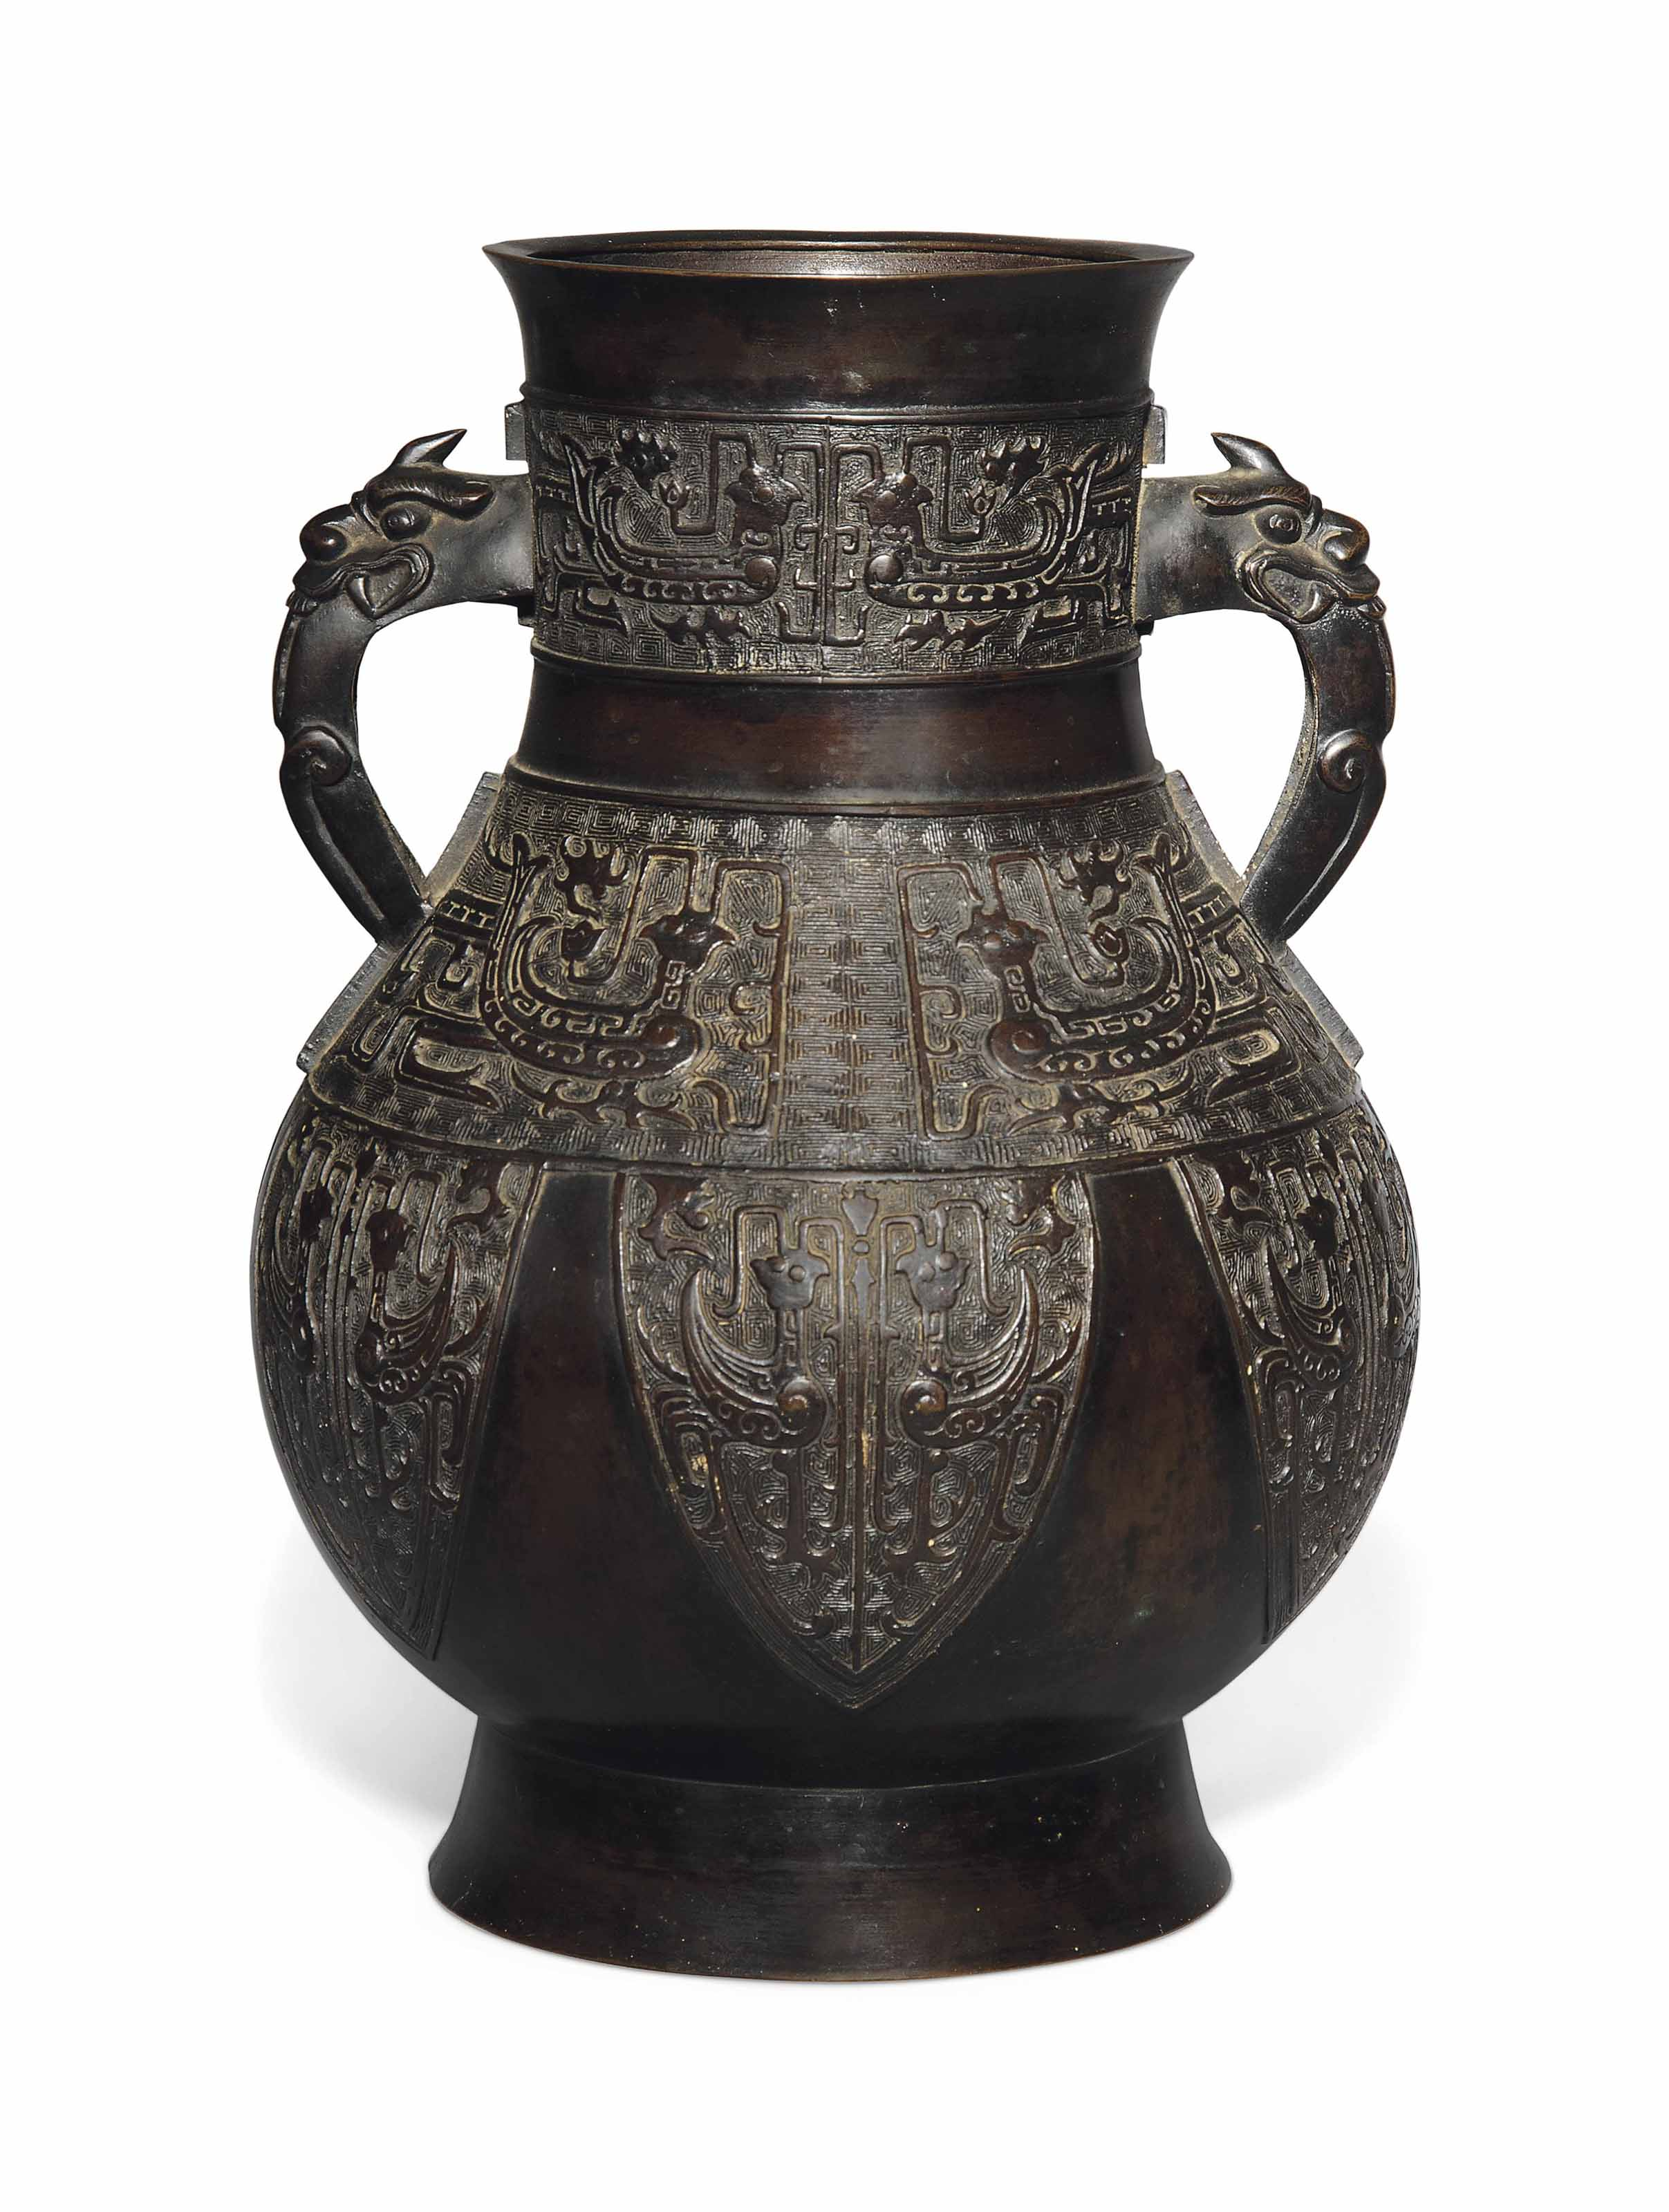 A CHINESE ARCHAISTIC BRONZE VASE, HU